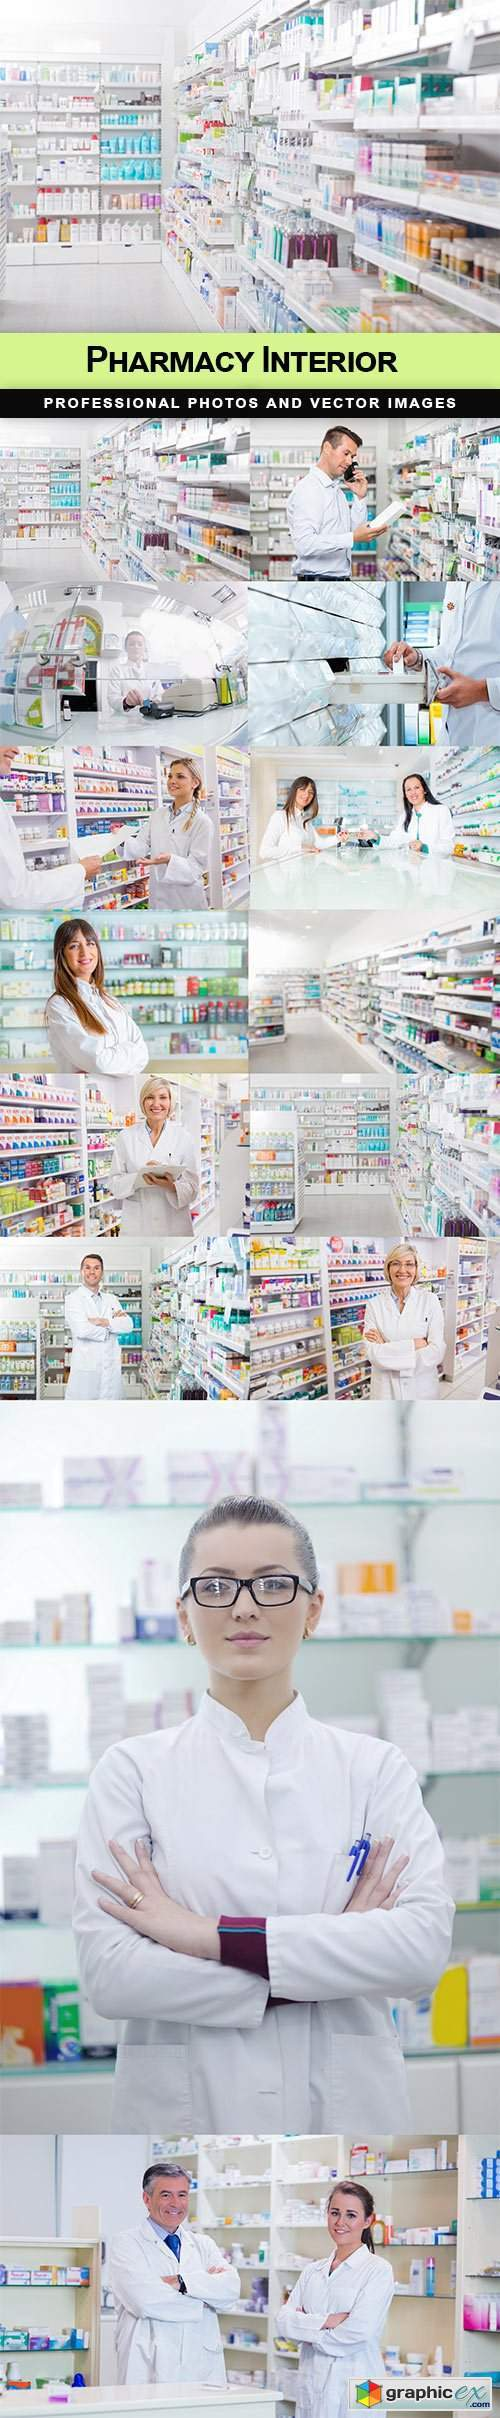 Pharmacy Interior - 14 UHQ JPEG